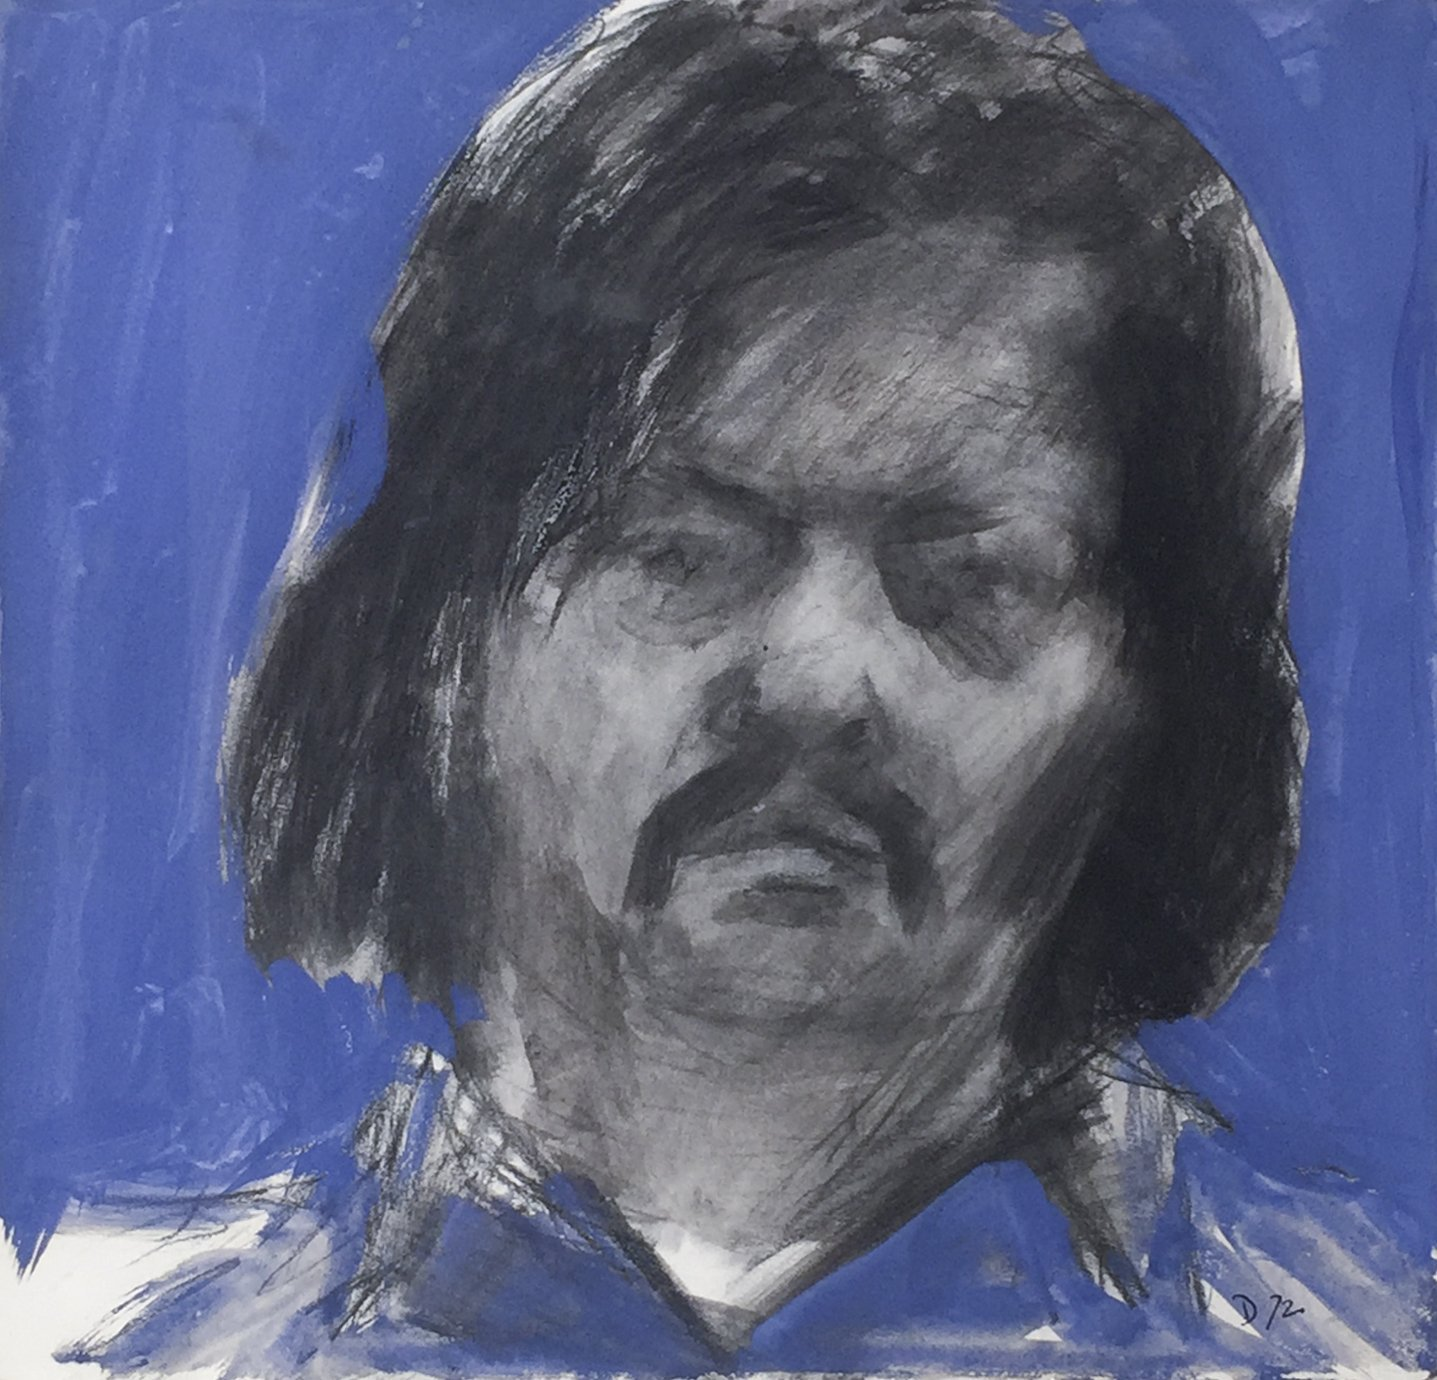 Fred Dalkey, Self-Portrait, 1972